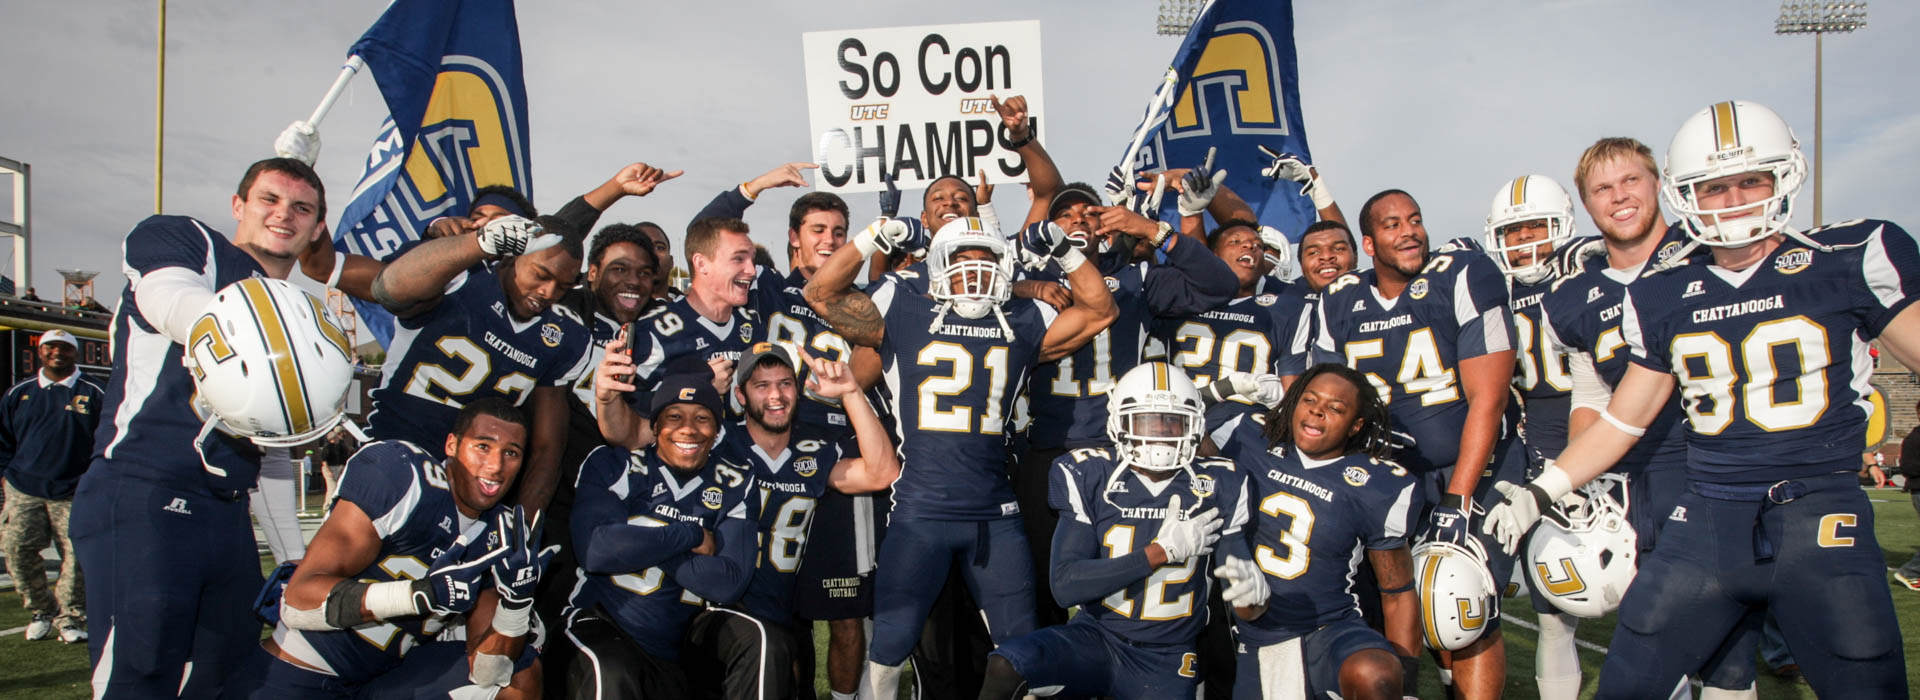 UTC Mocs Football SOCON Champs